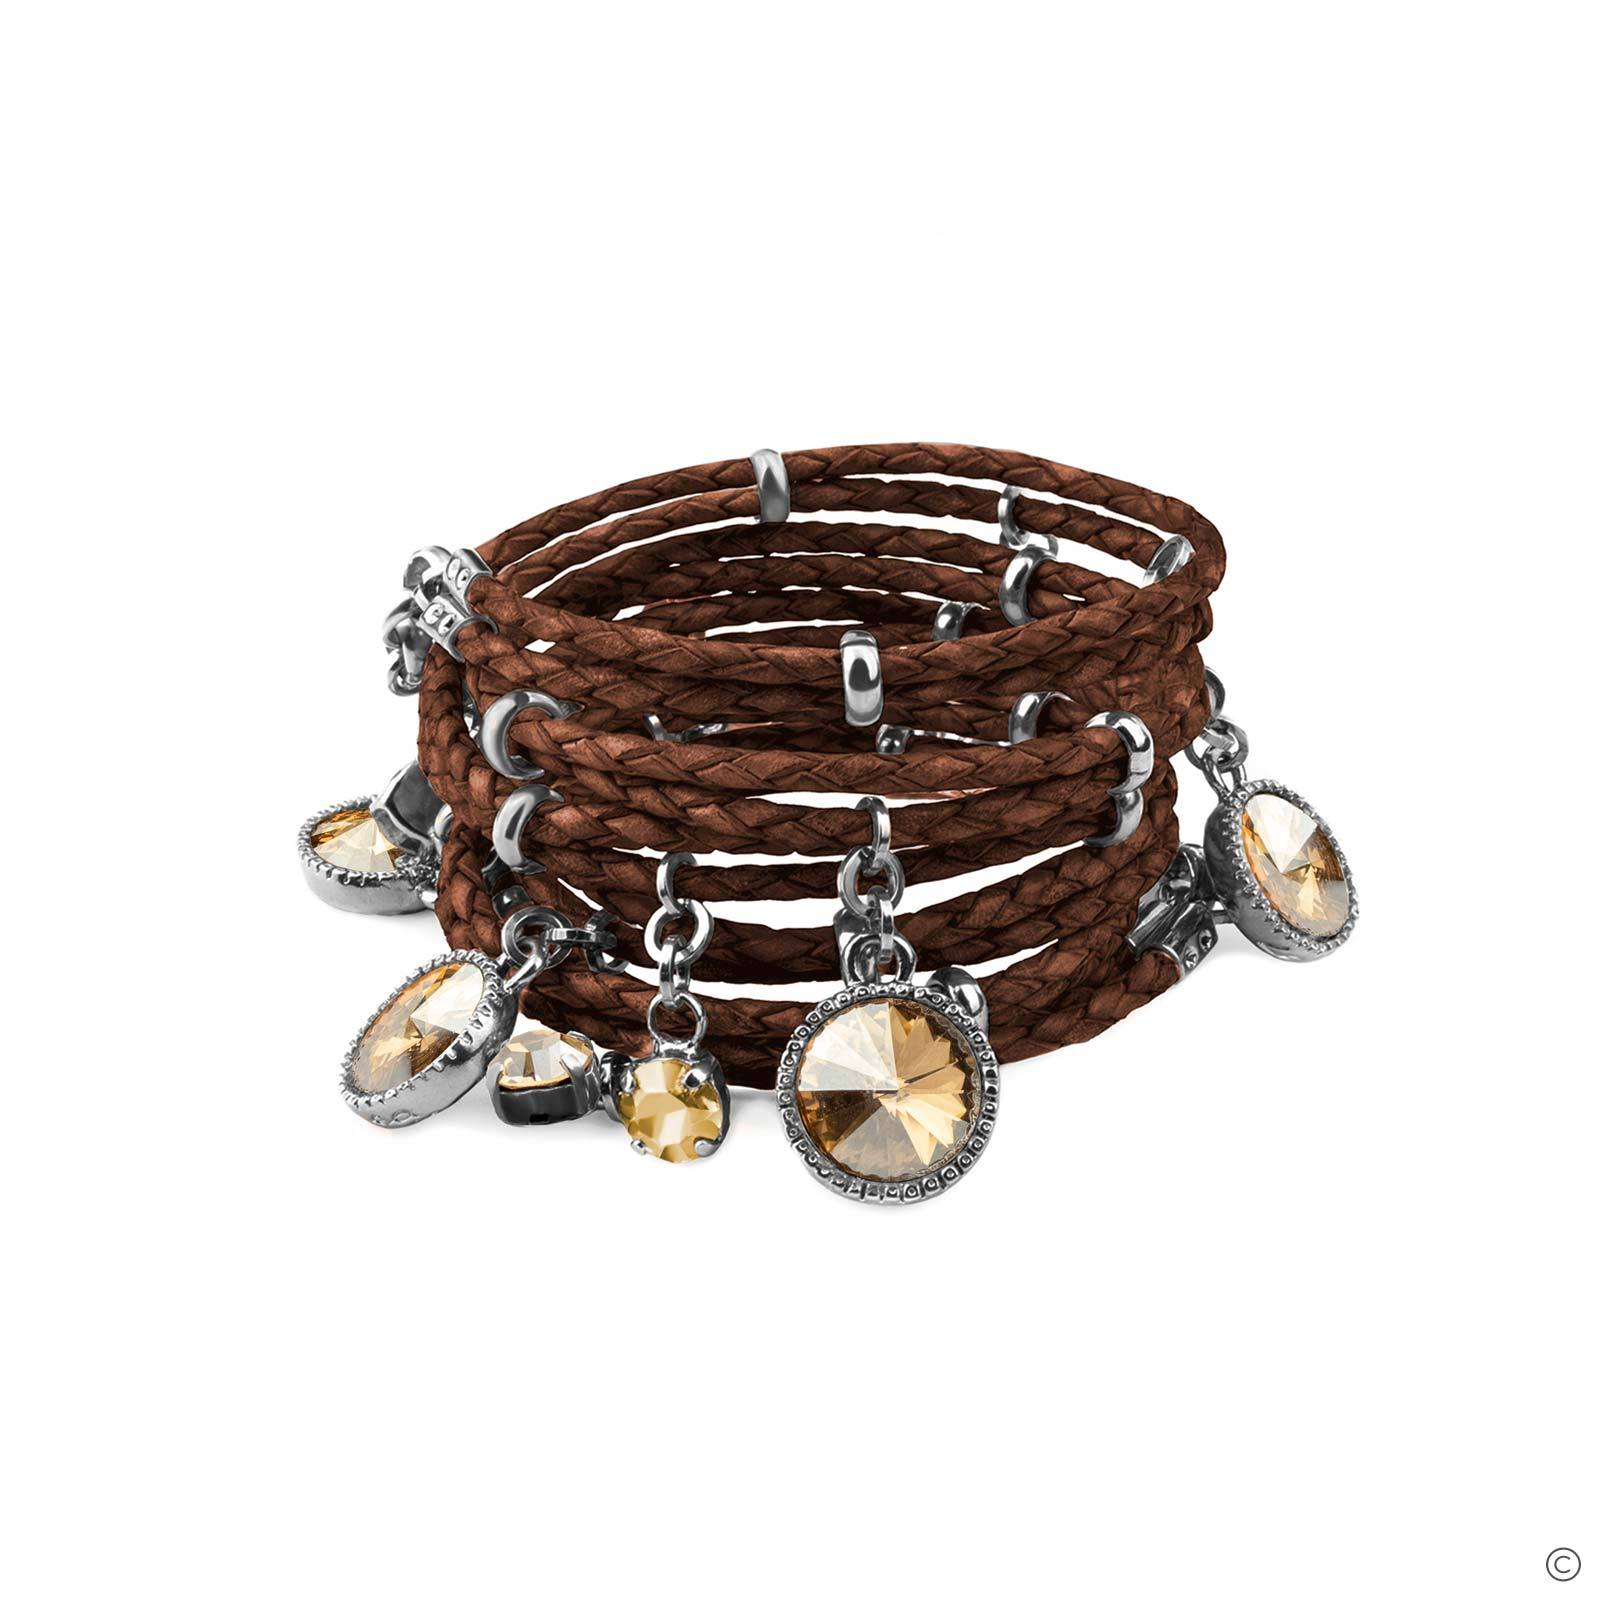 Daydream Leather Bracelet - Brown & Silver